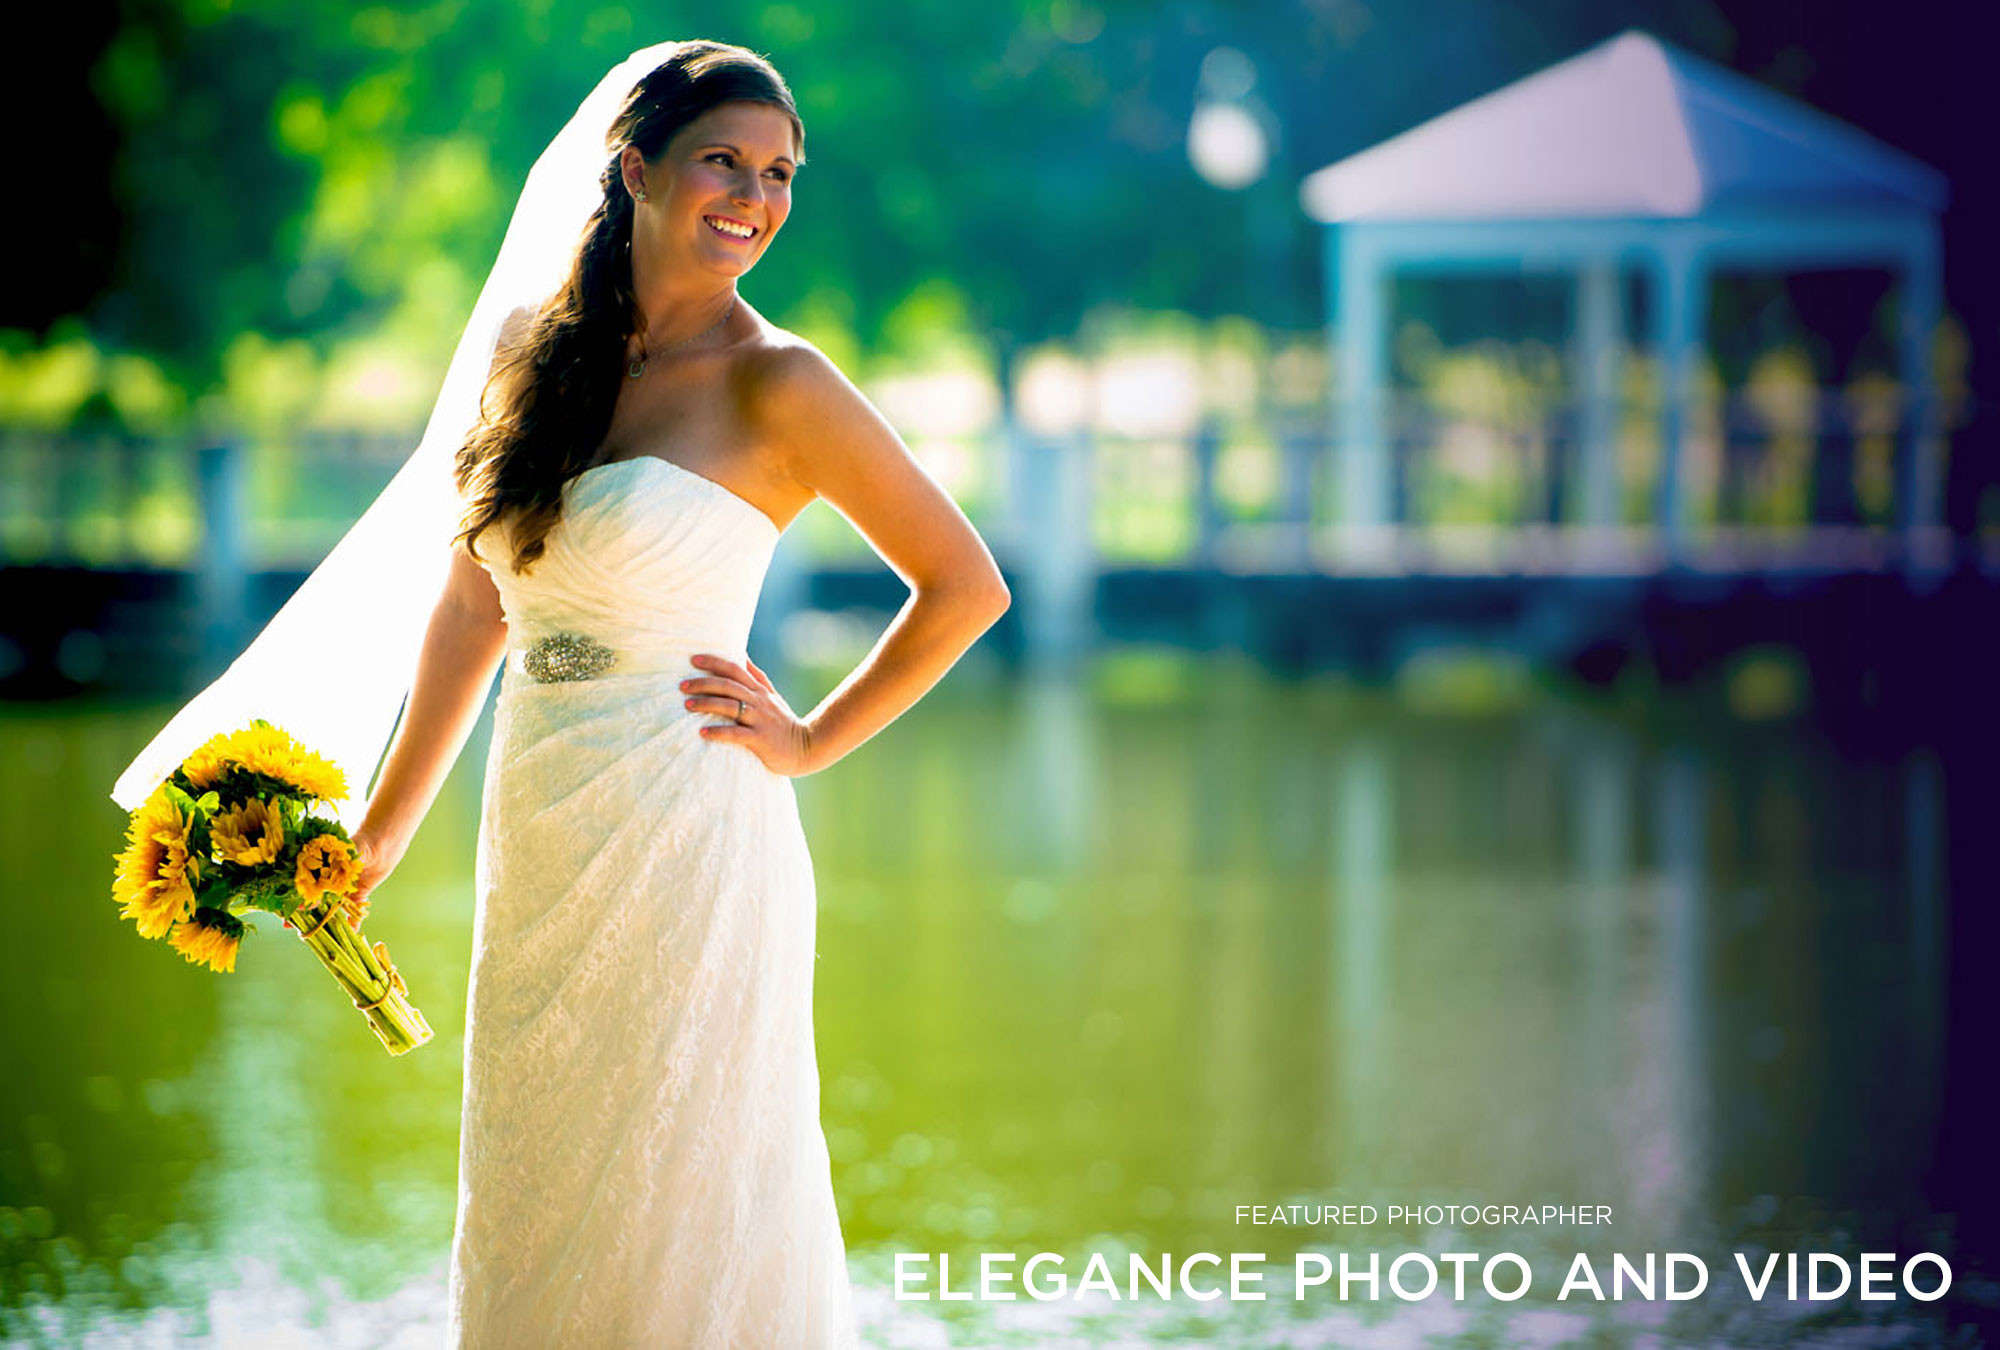 Elegance Photo and Video - Featured Photographer